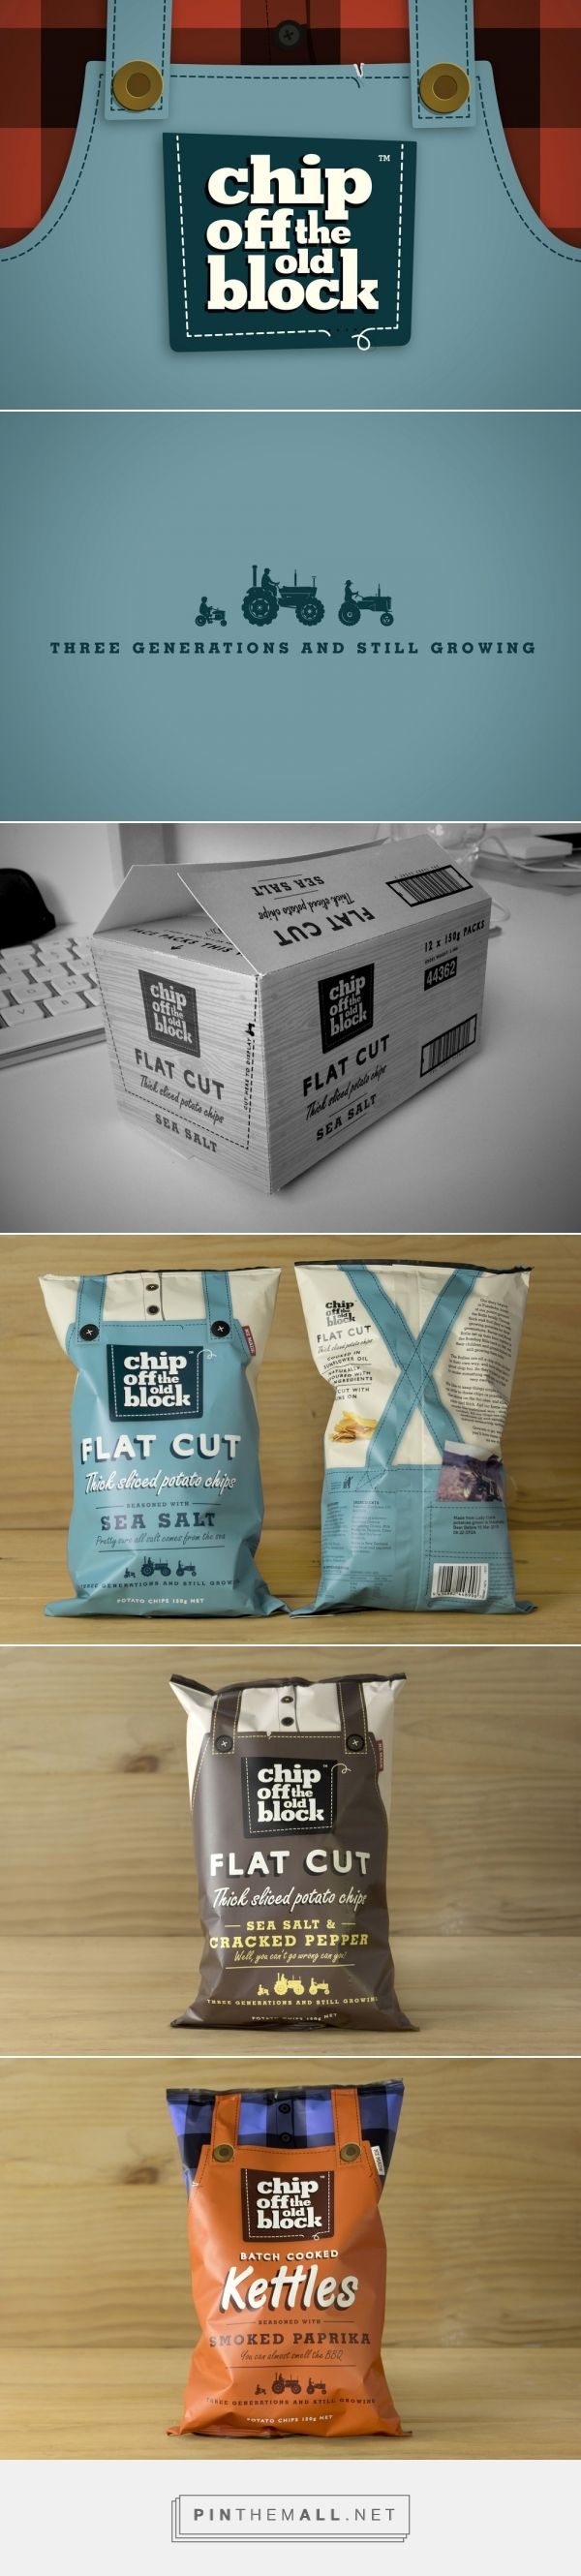 Chip Off The Old Block via phd3 curated by Packaging Diva PD. An alternative grower brand of chips in an otherwise over-processed category. Brand name, overalls, shirts, flat colours, pocket device and language in the brand packaging celebrates 'three generations.